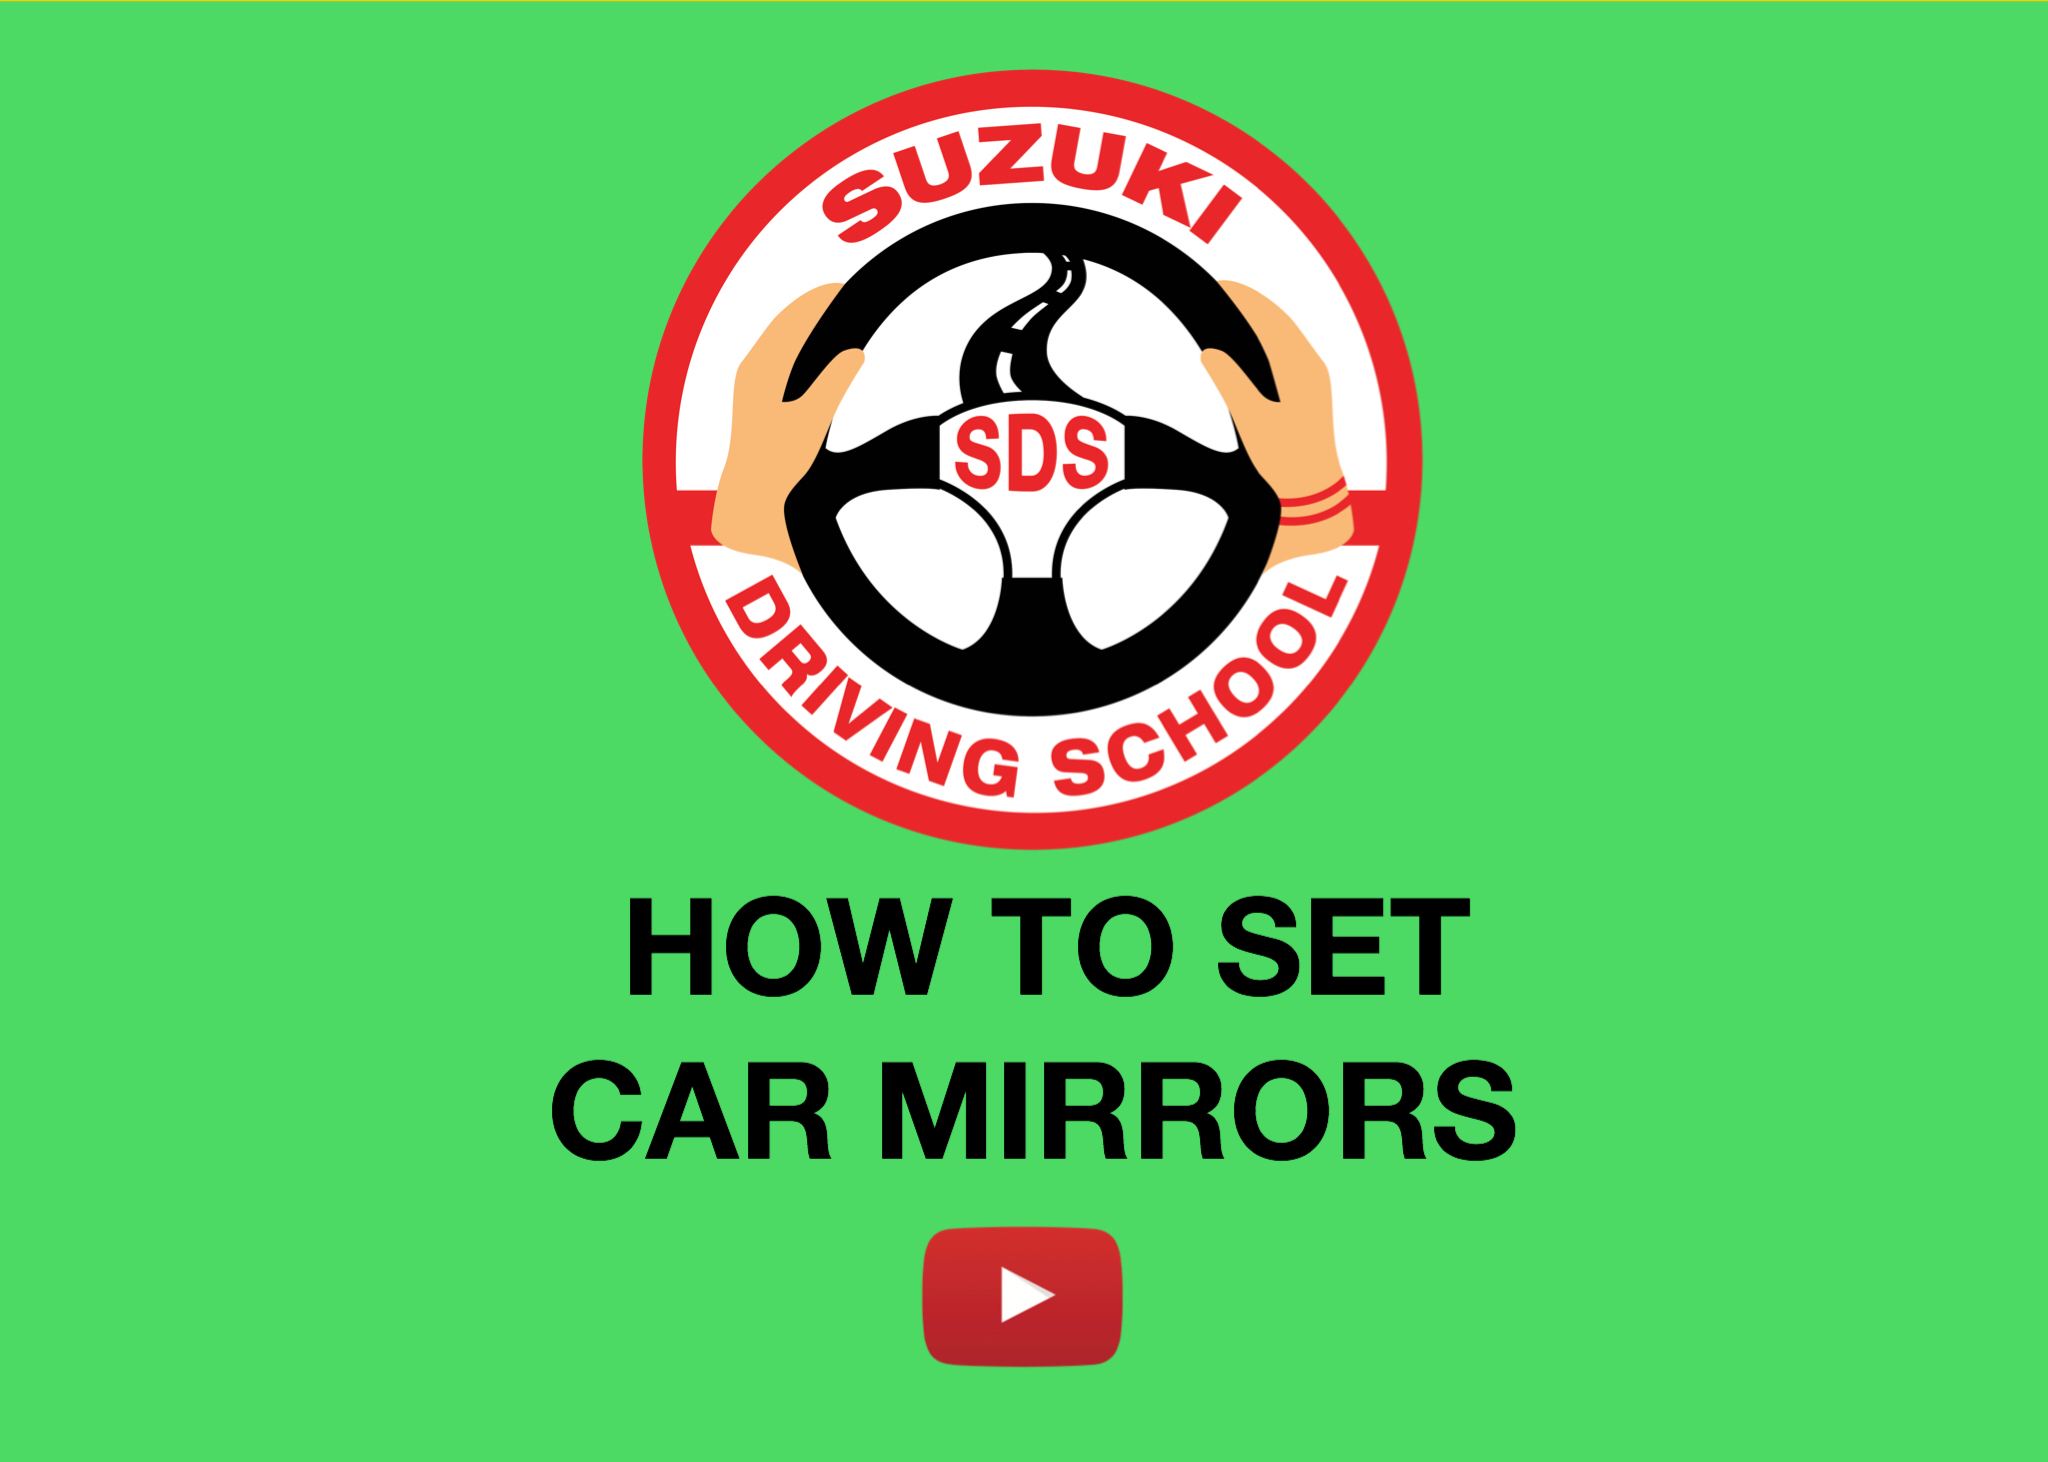 HOW TO SET CAR MIRRORS